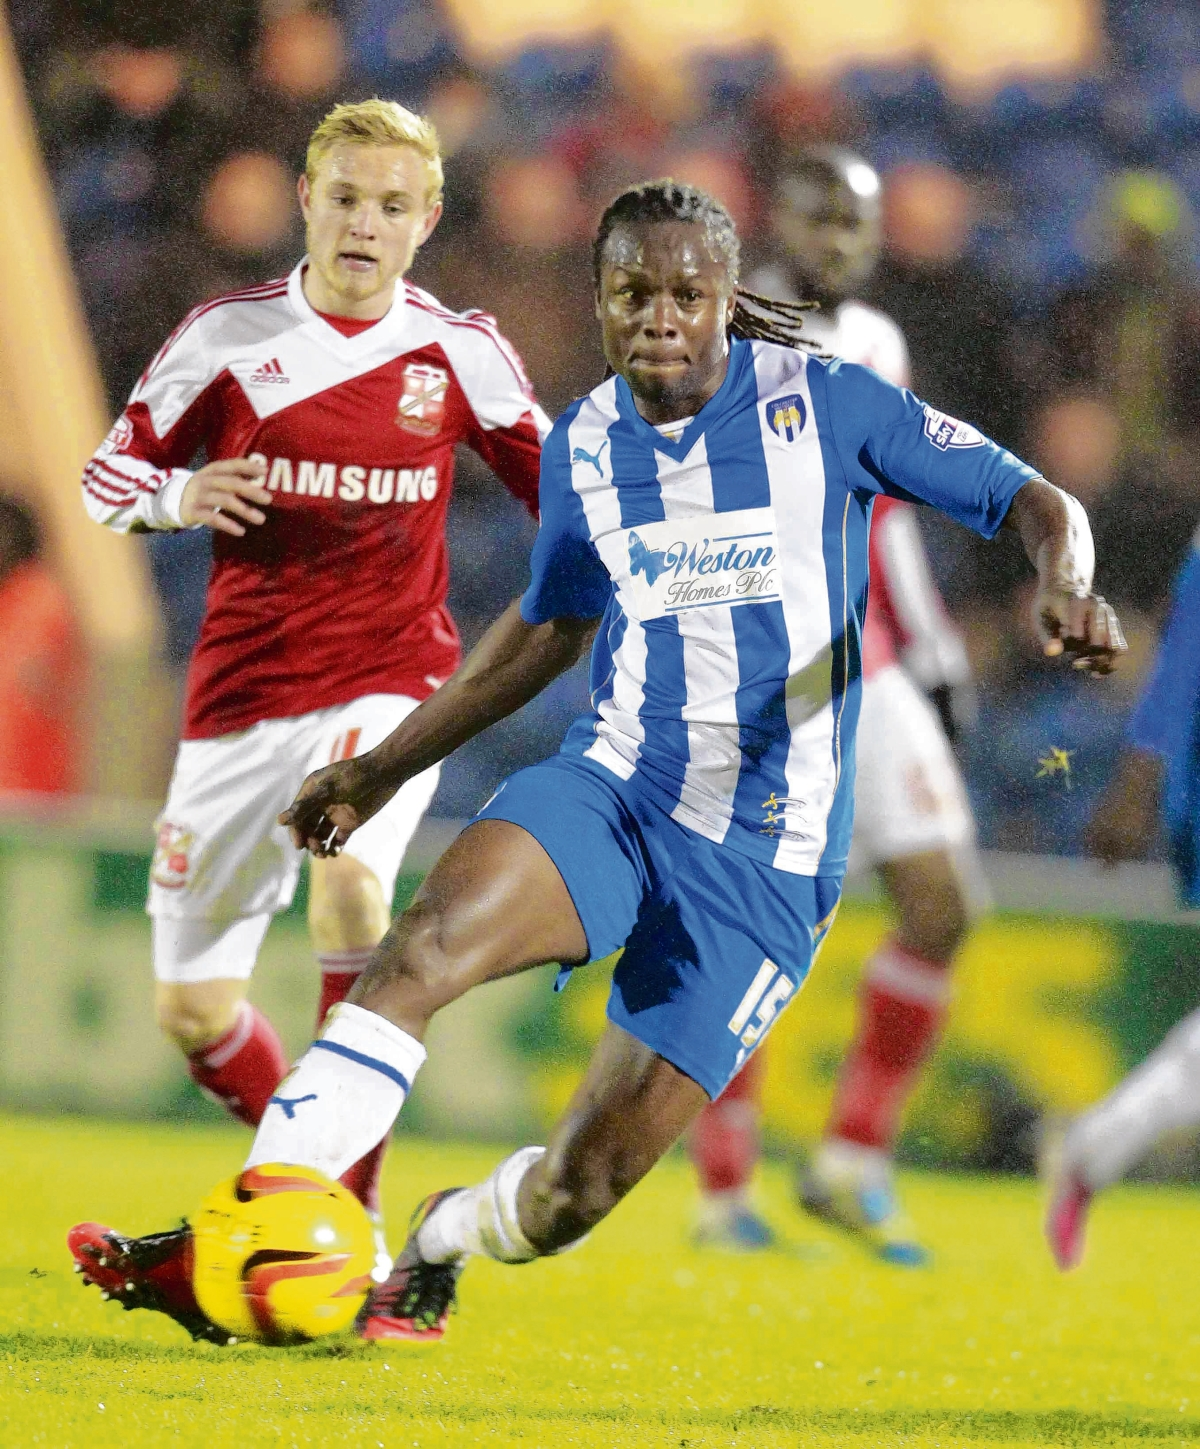 We meet again - Colchester United's Marcus Bean looks for an opening during his side's 2-1 home defeat against Swindon Town, last November. Picture: STEVE BRADING (CO86651-48)